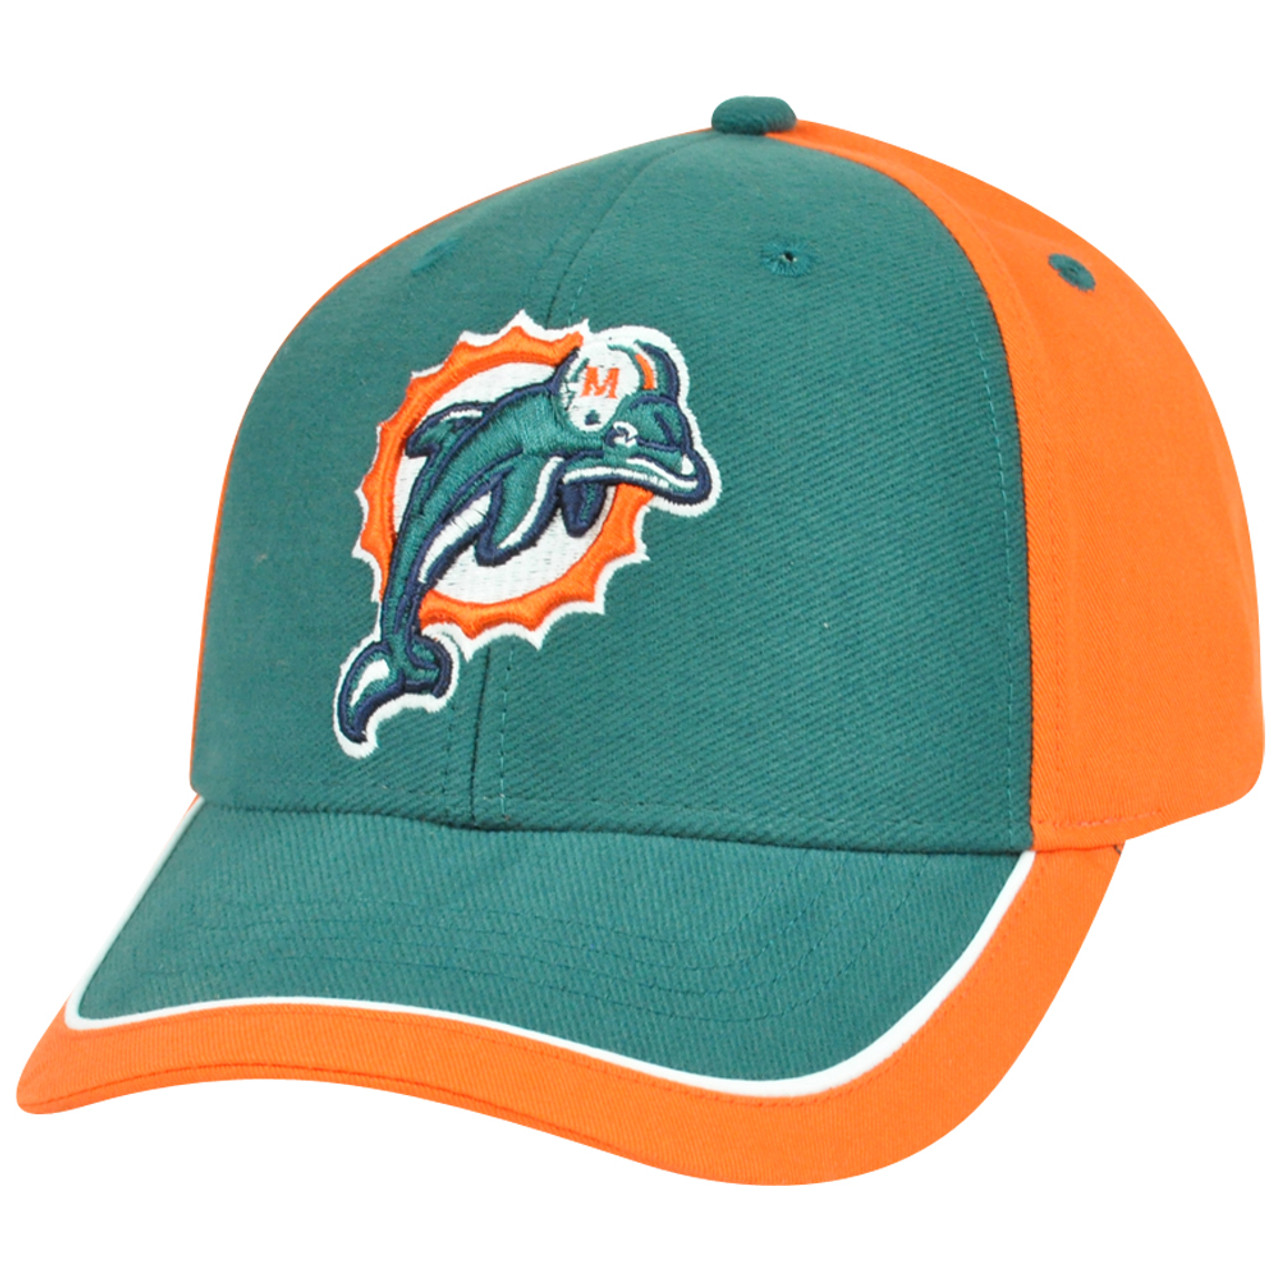 NFL Adjustable Velcro Curved Bill X2507 Construct Miami Dolphins Hat Cap 2  Tone 1a64c1f21